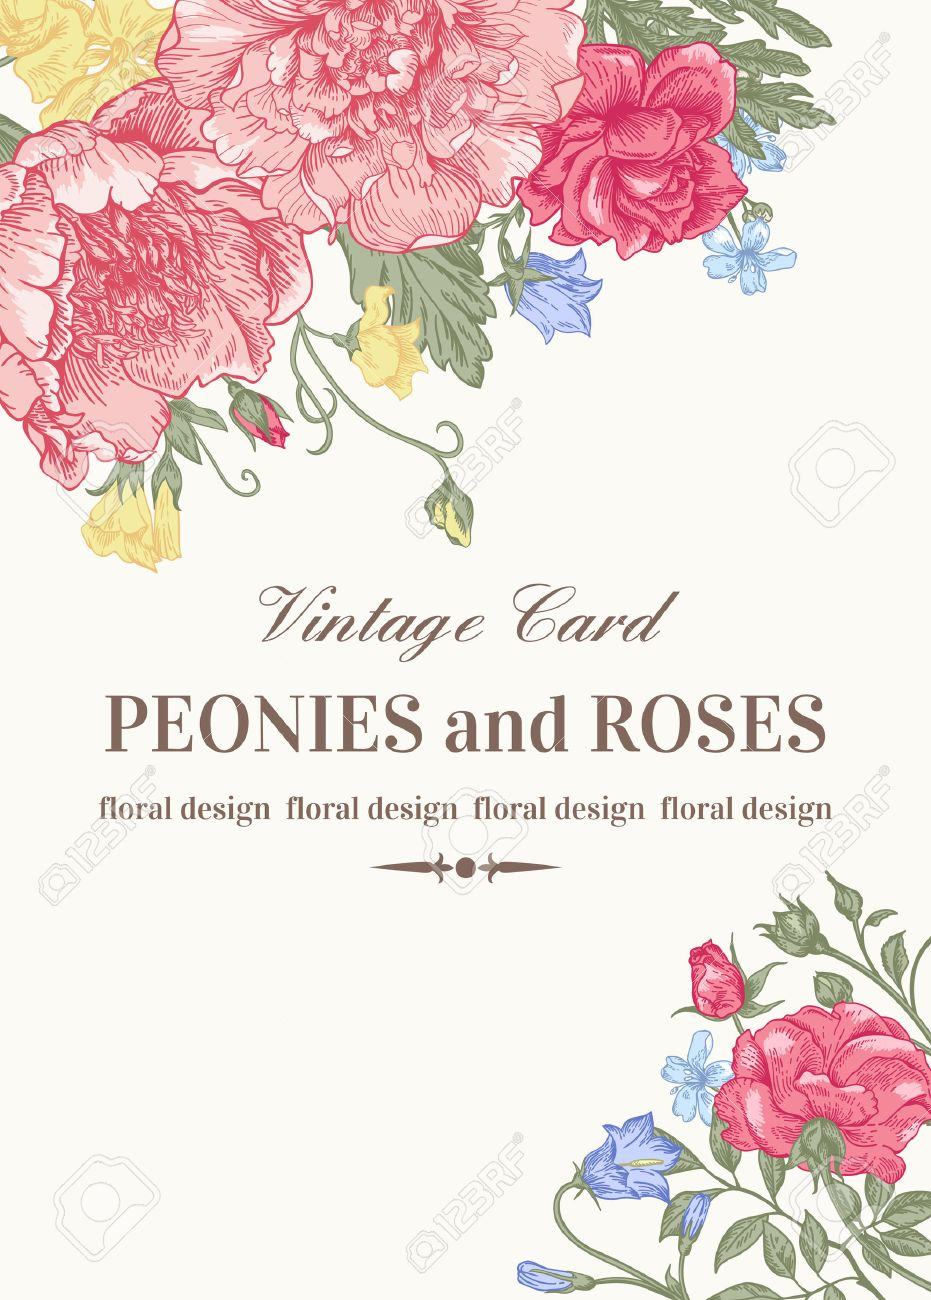 Wedding card with roses and peonies in pastel colors on a white background. Stock Vector - 40447778